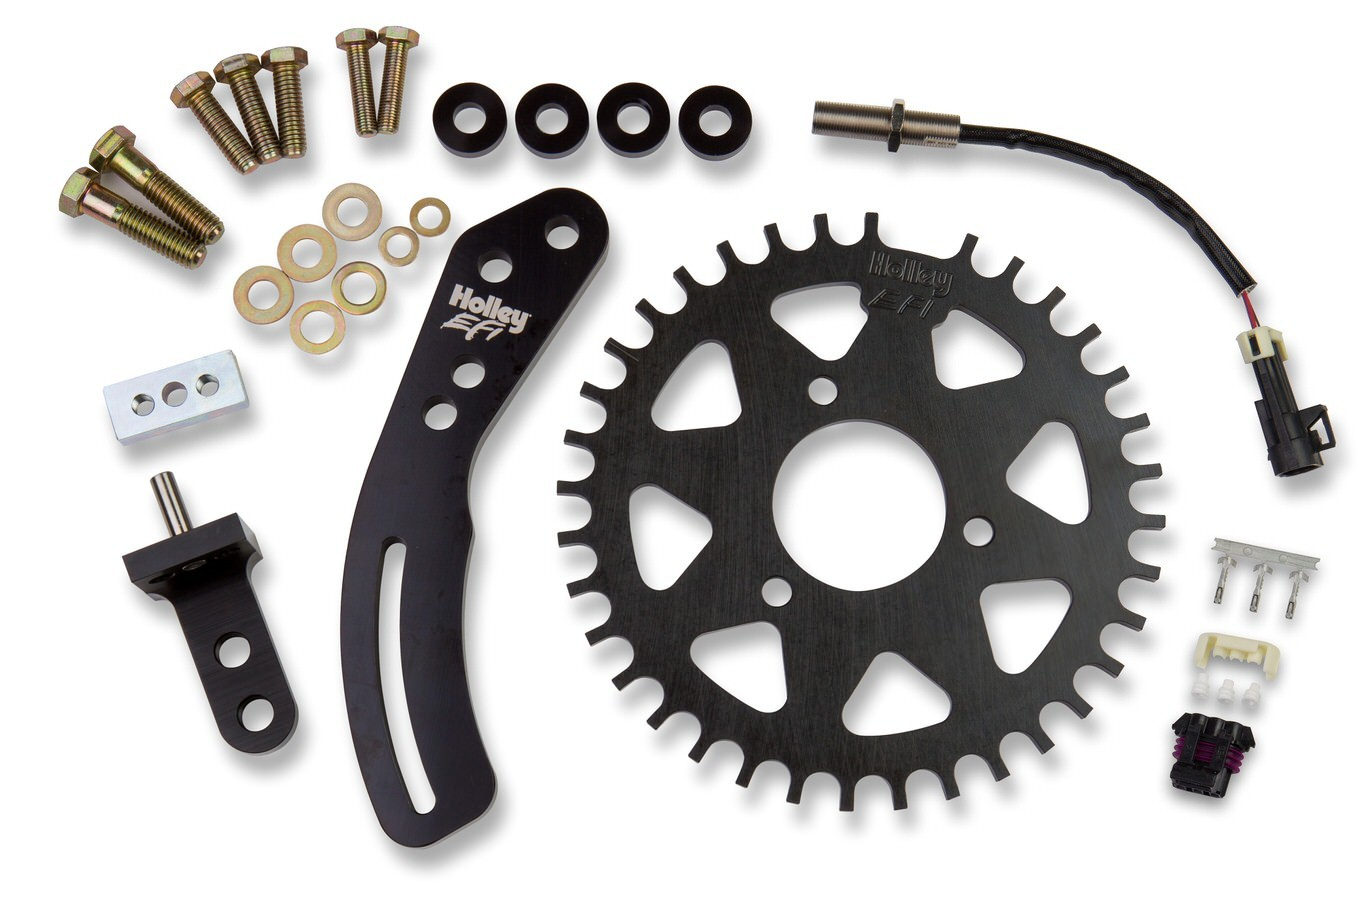 Holley Crank Trigger Kit - BBC 8in 36-1 Tooth